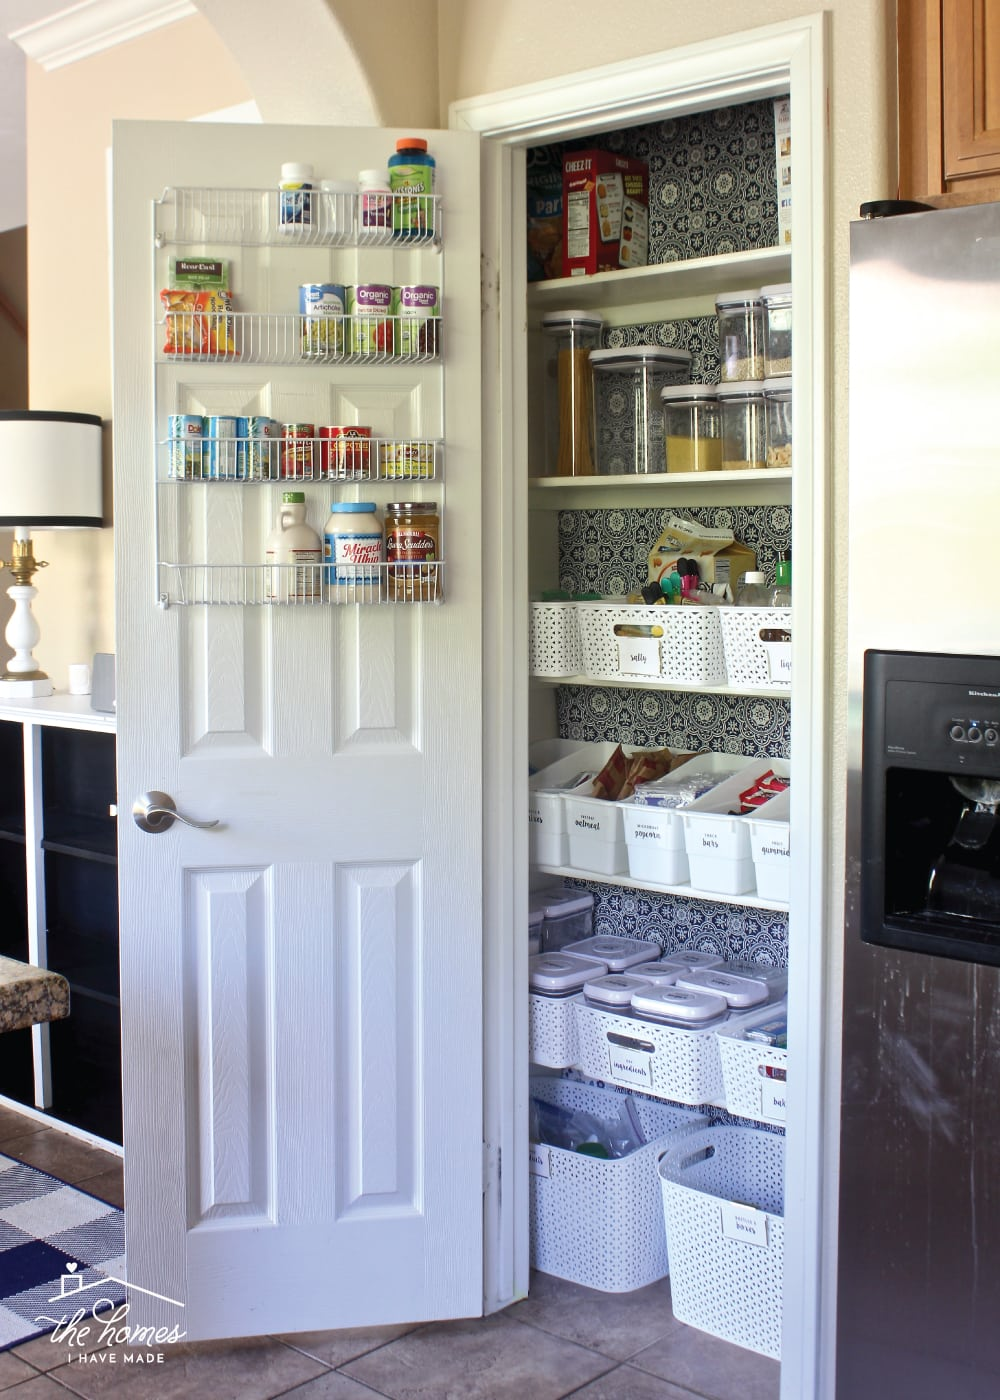 Take a tour of a perfectly organized pantry with all sorts of unique and smart food storage solutions!